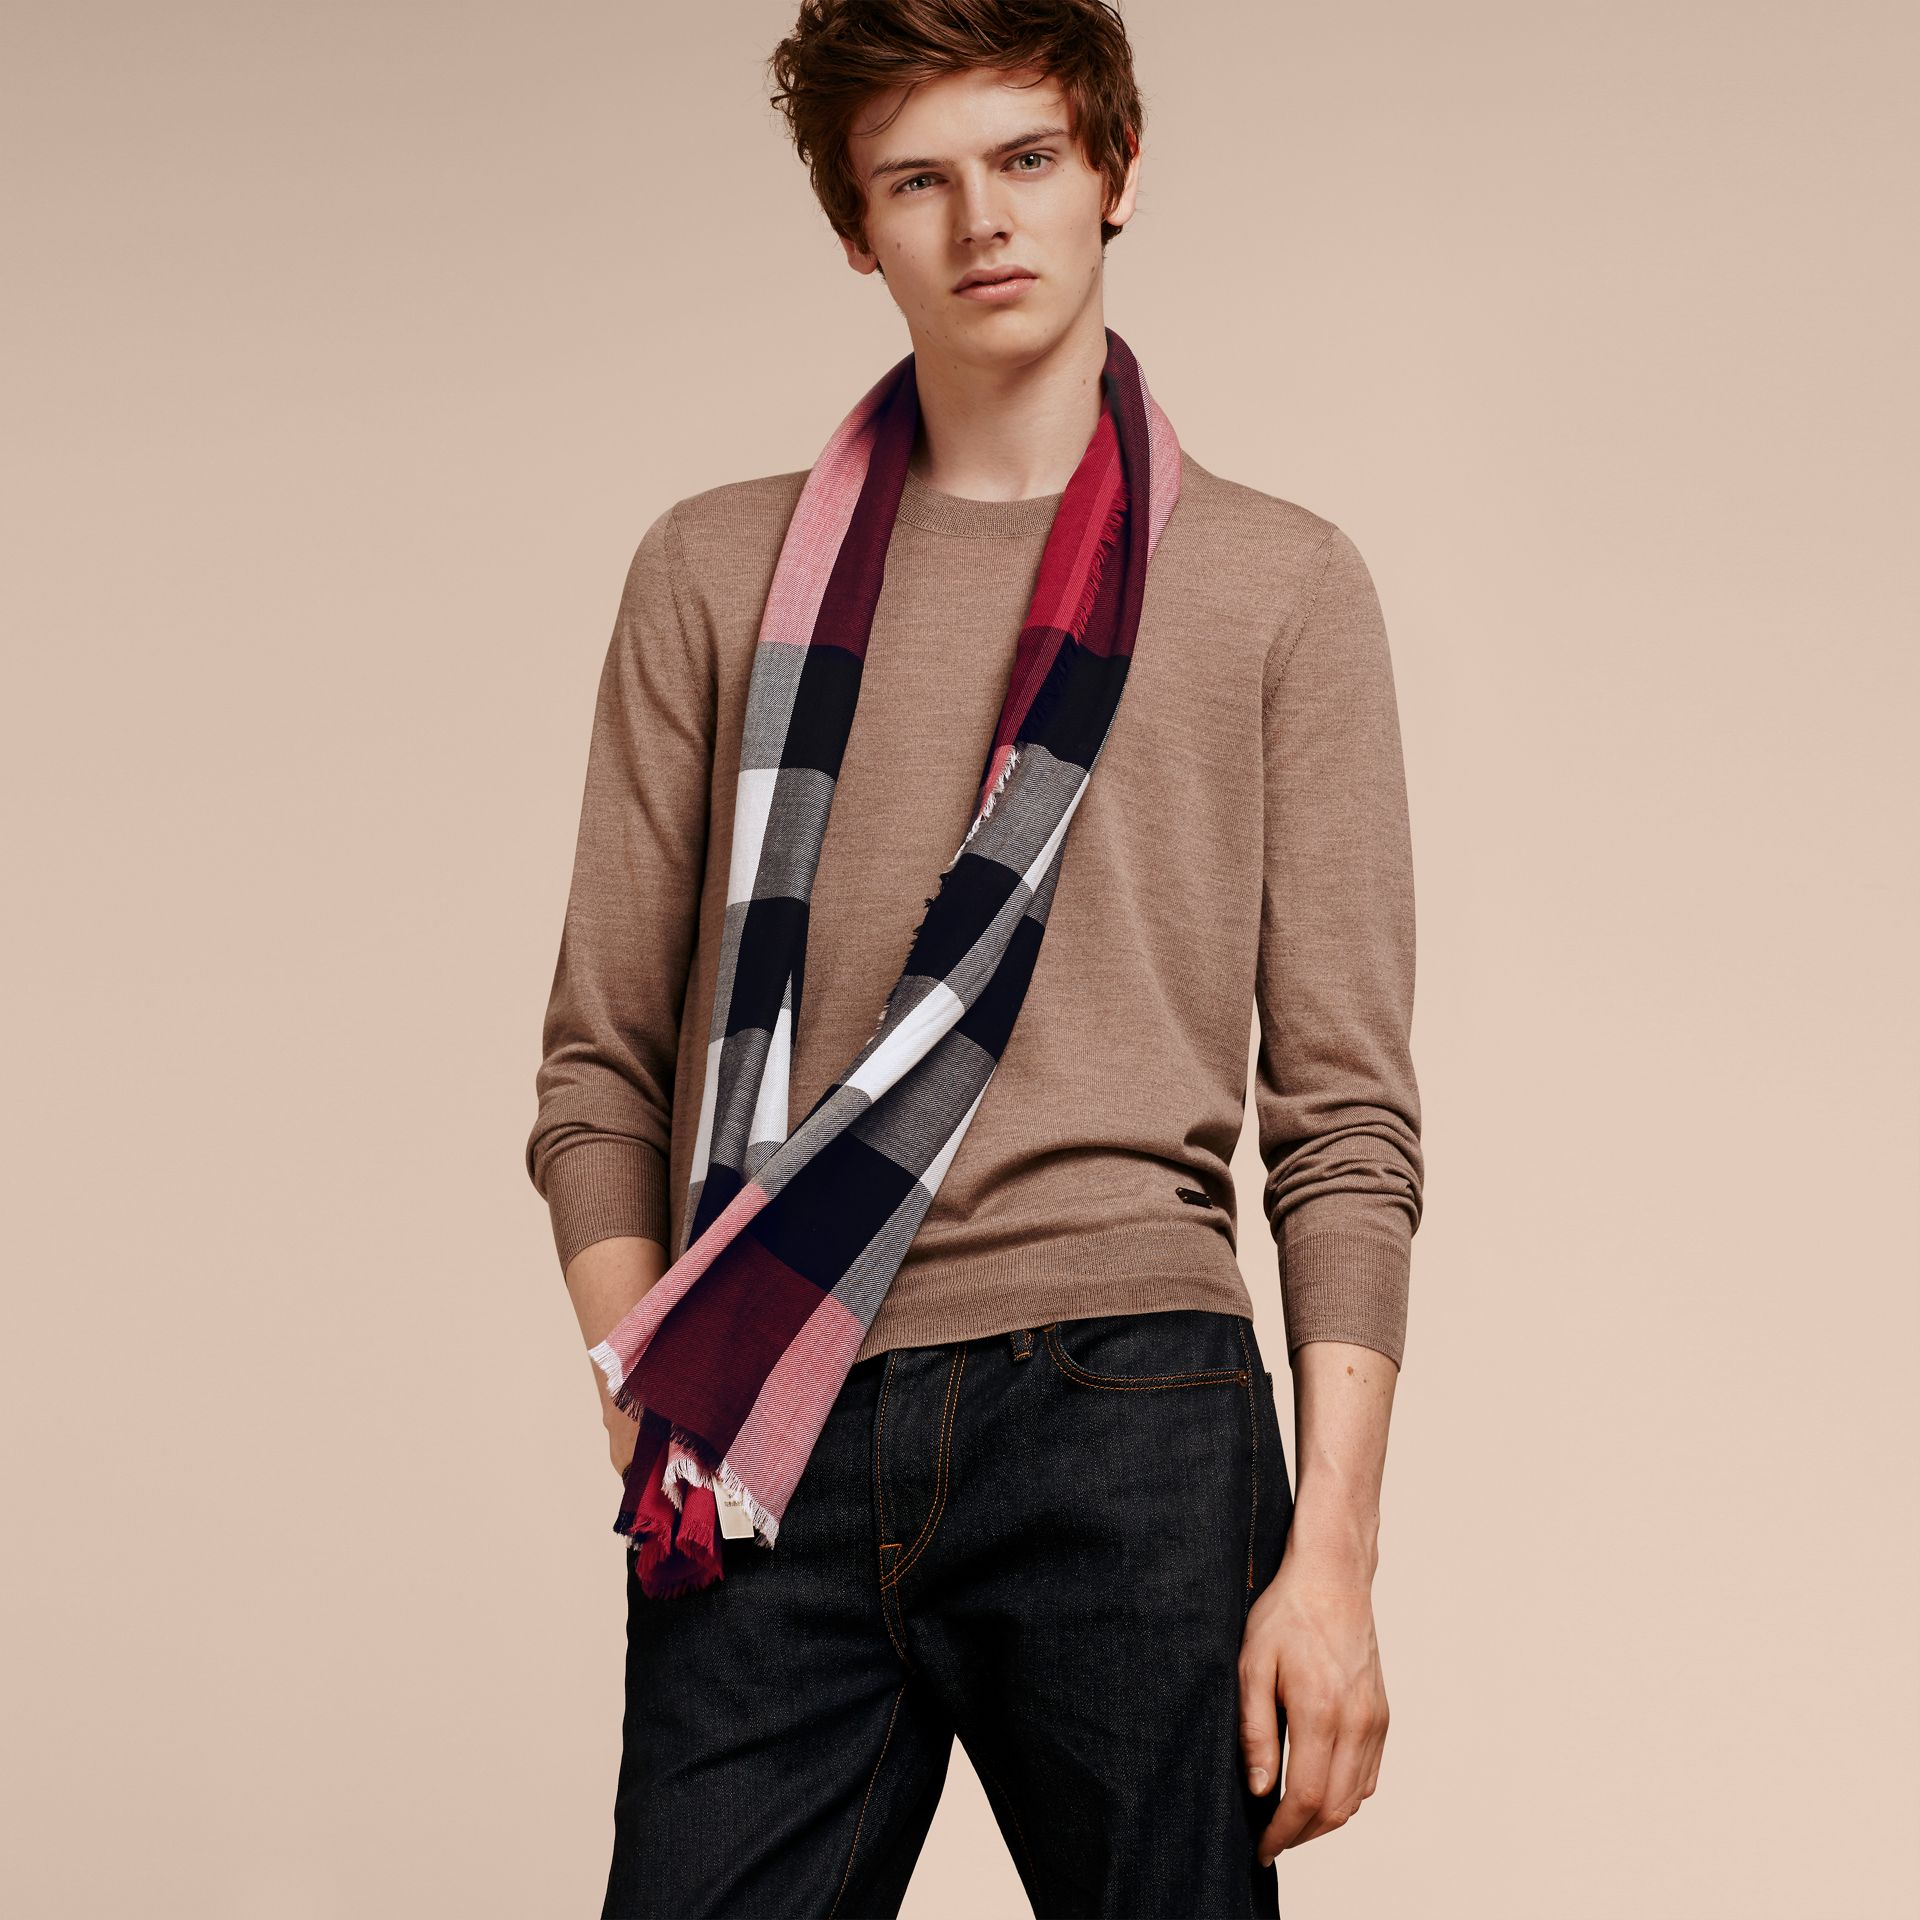 The Lightweight Check Cashmere Scarf in Fuchsia Pink | Burberry - gallery image 3